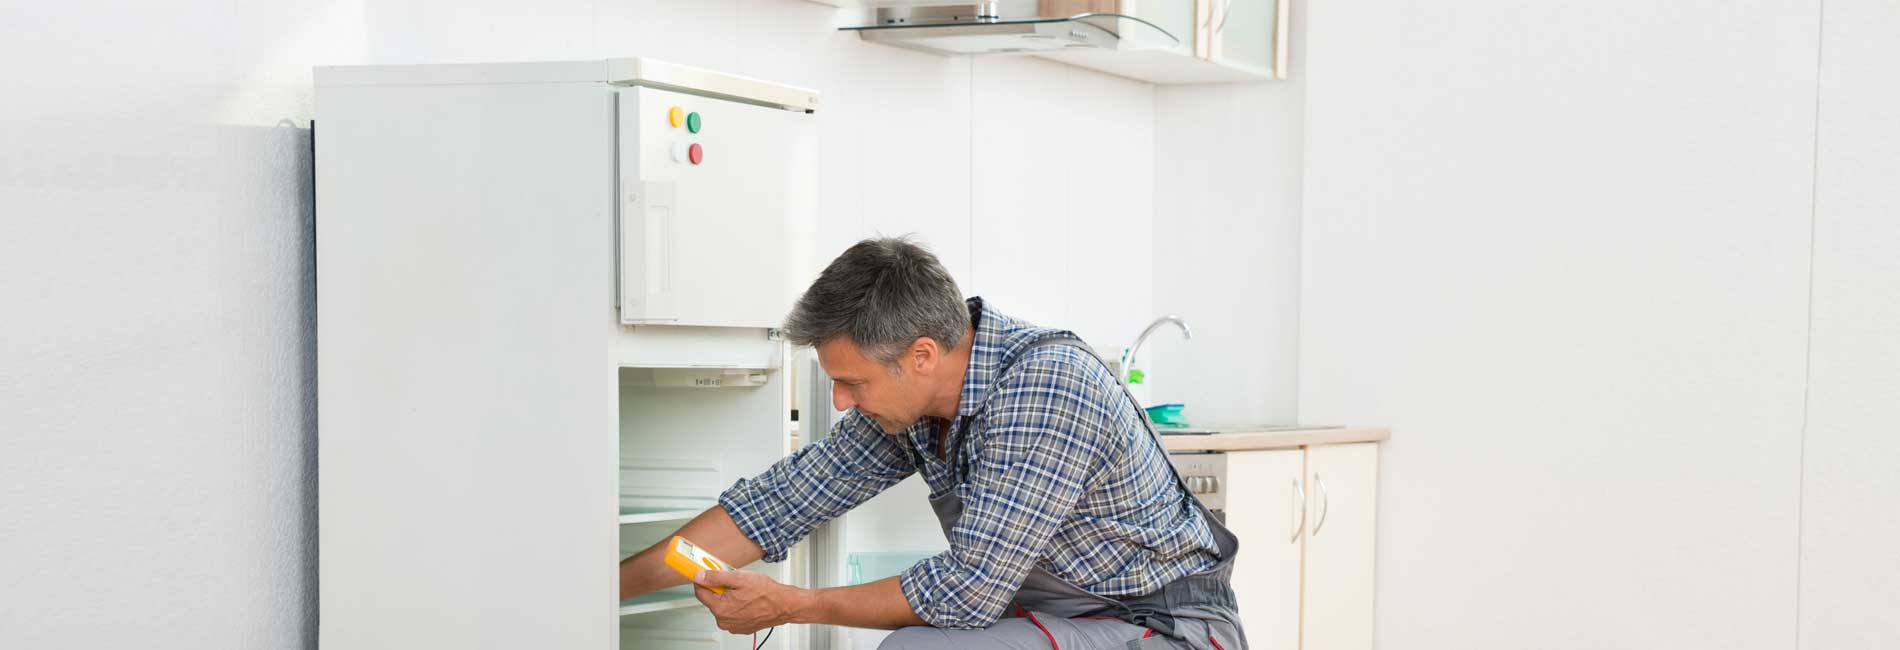 Fridge Repair in TVK Nagar